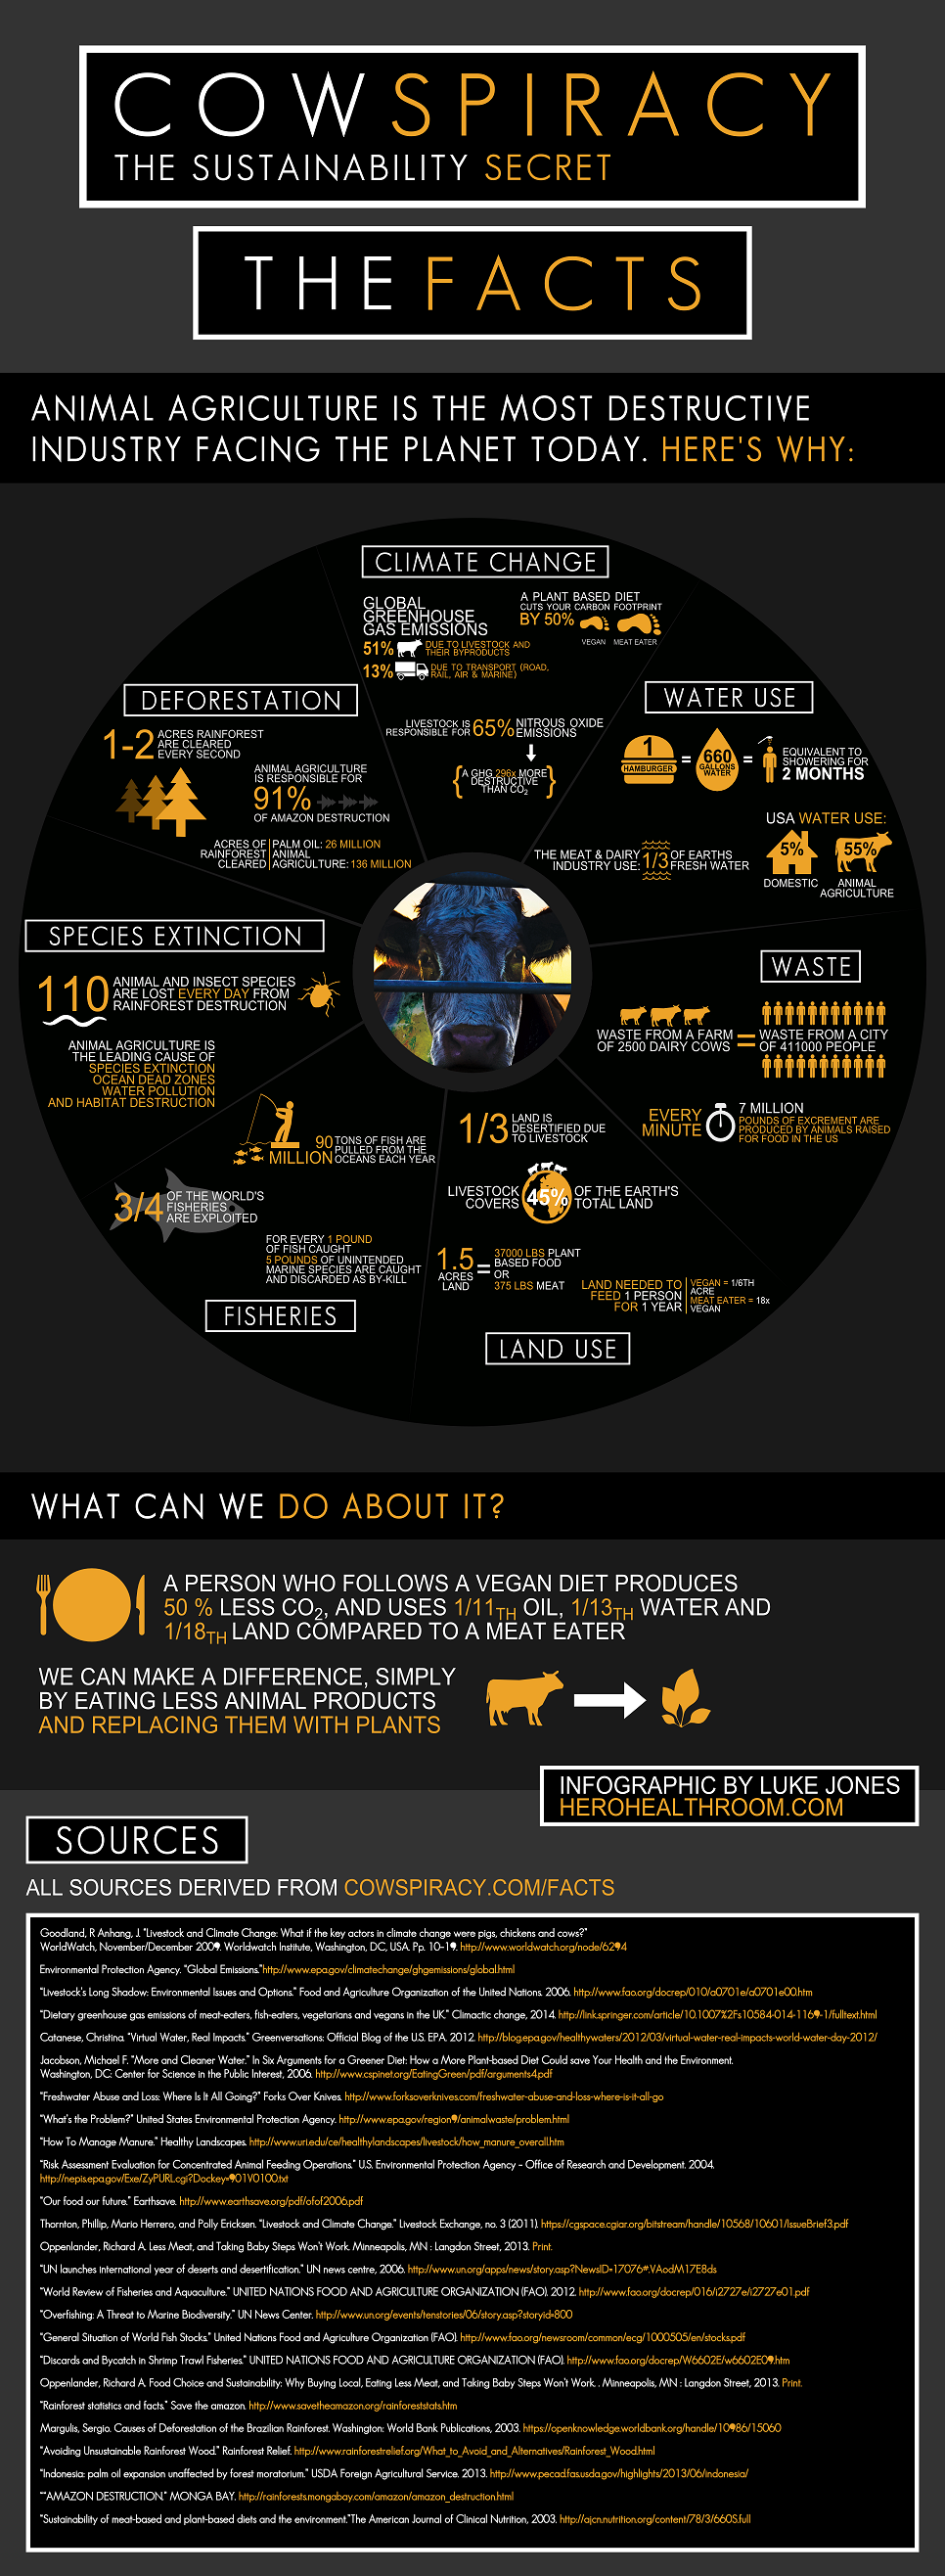 luke-jones-cowspiracy-infographic-imperial-updated